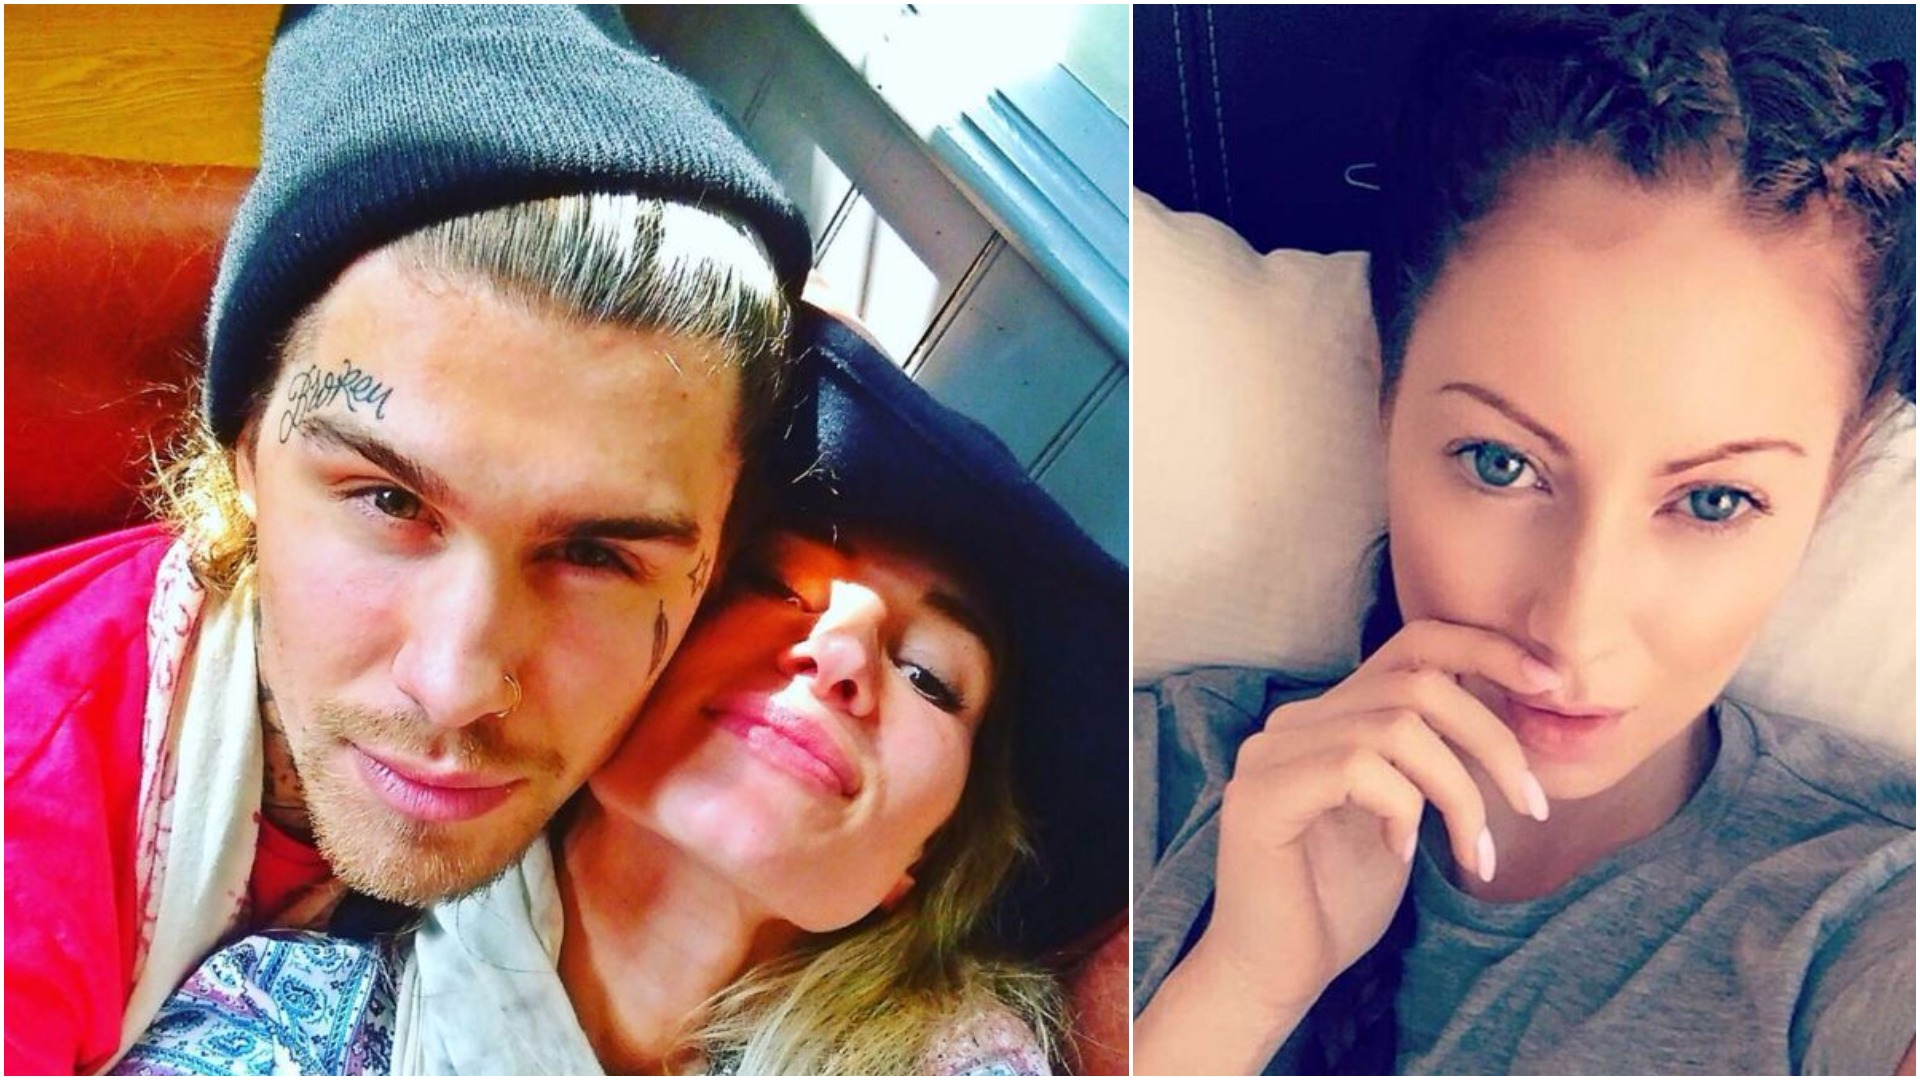 Marco Pierre White Jr wants fiancee to have a threesome with Big Brother housemate Laura Carter